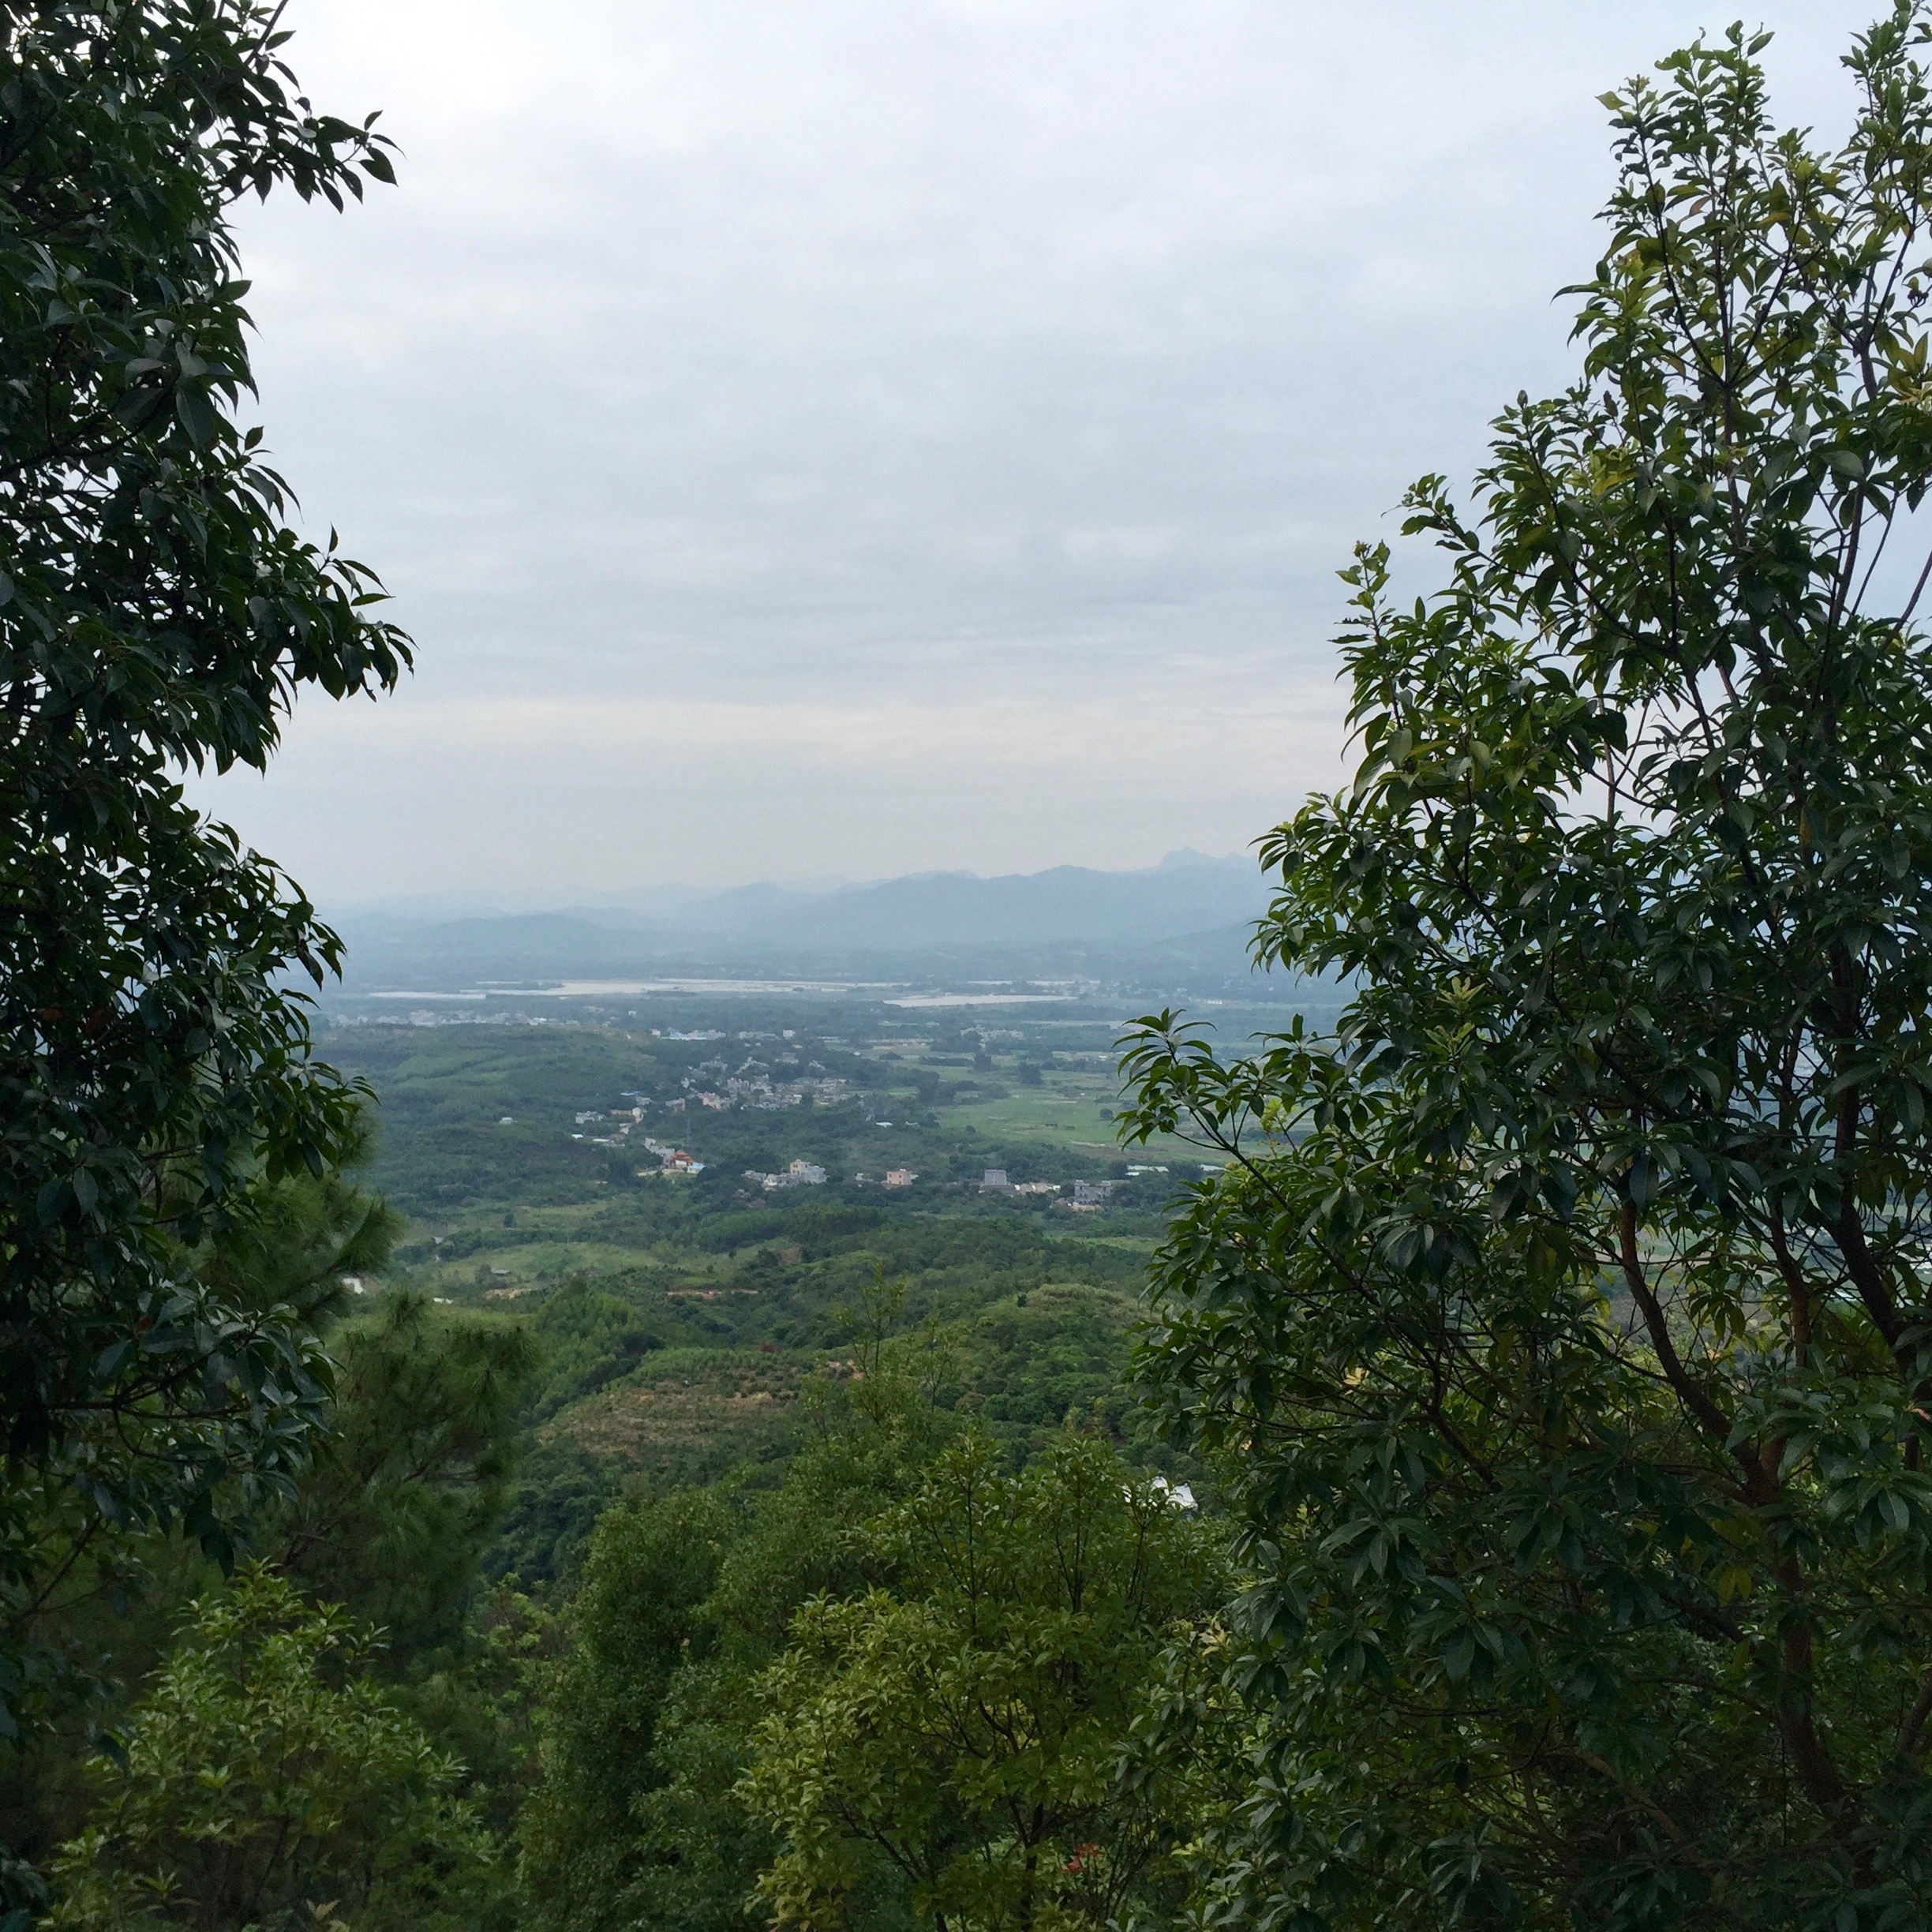 Looking out over Huidong.